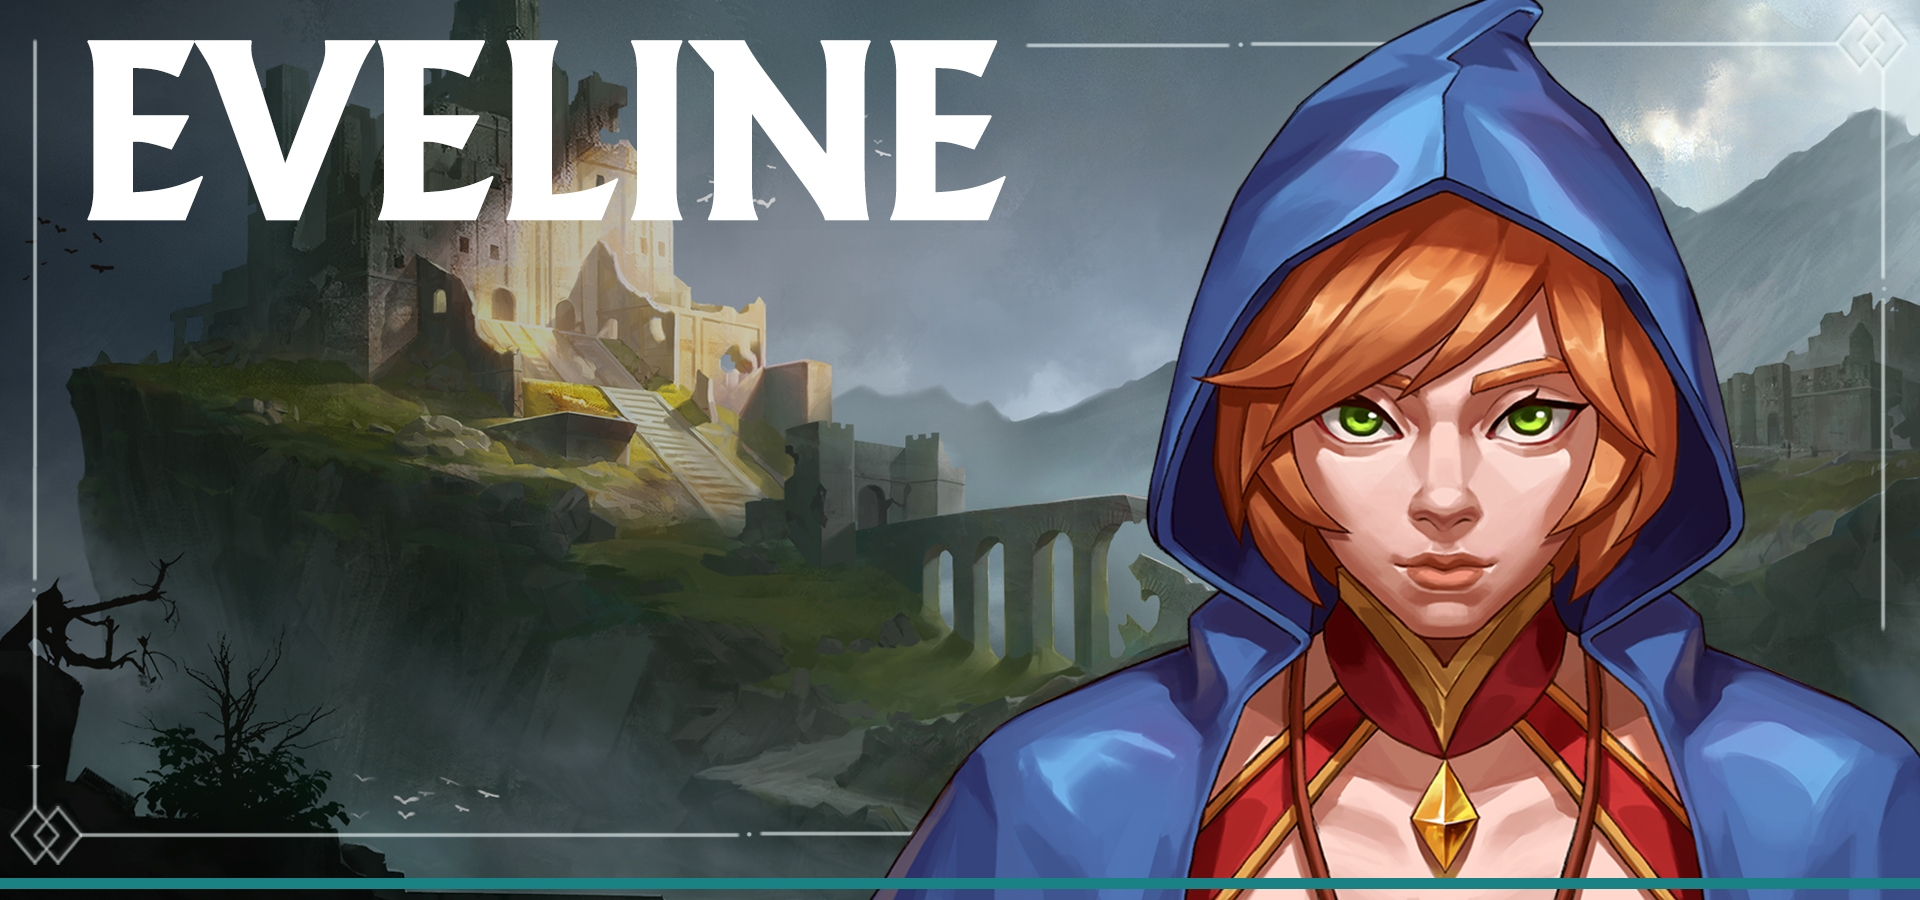 Character Introduction: Eveline